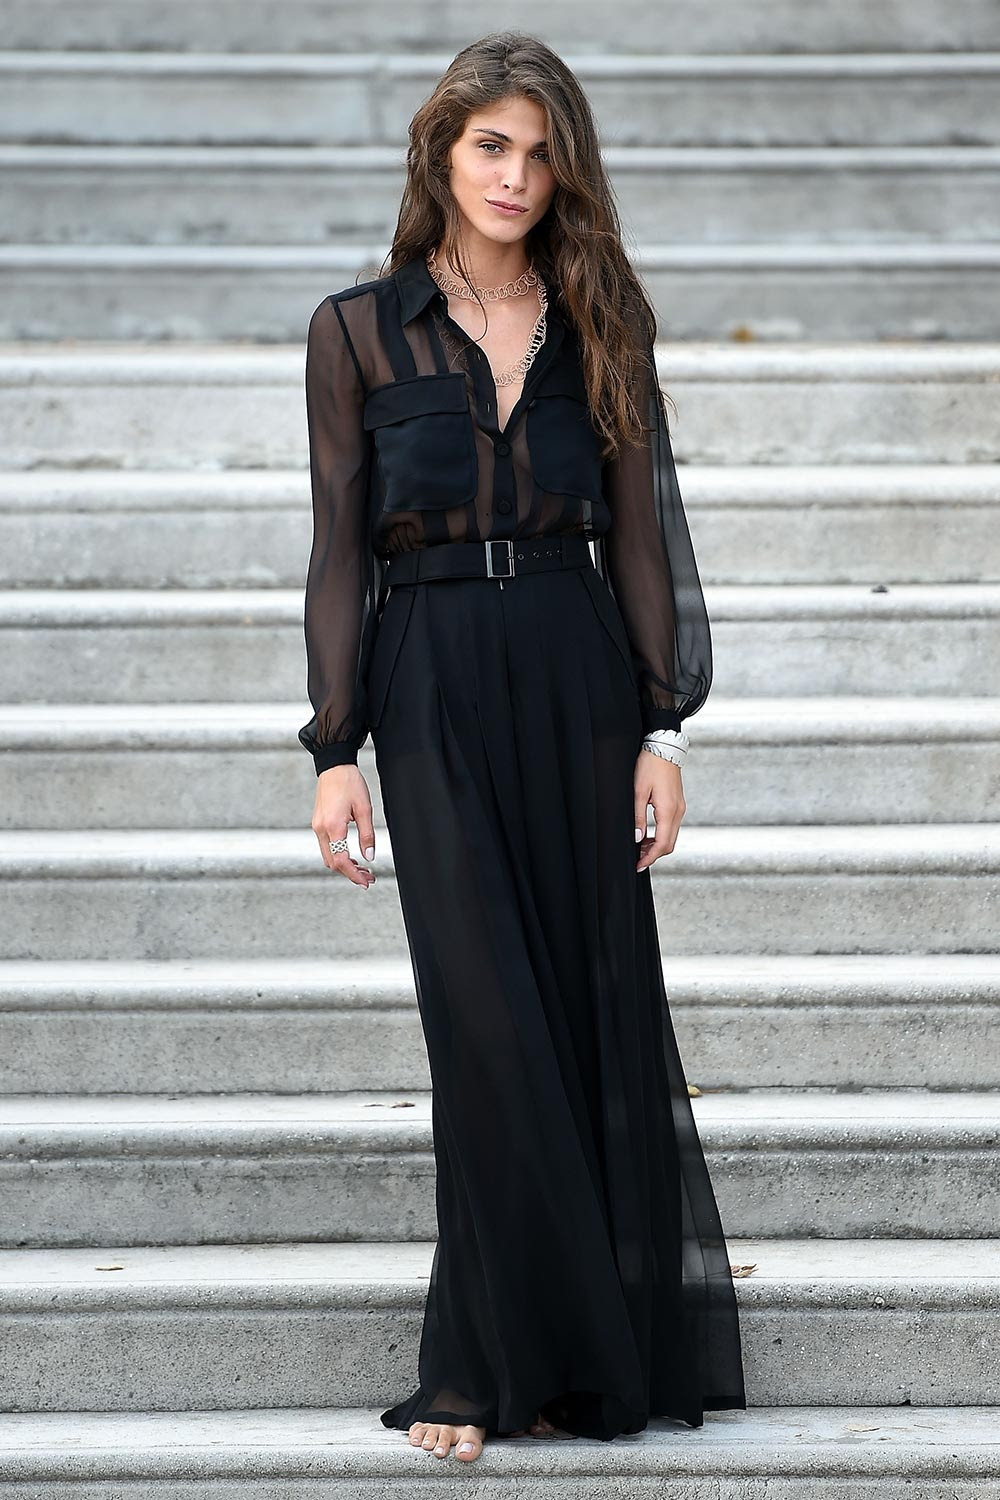 http://assets-prod.harpersbazaar.co.uk/people-and-parties/Best_Dressed/venice-film-festival/2015/elisasednaoui2.jpg